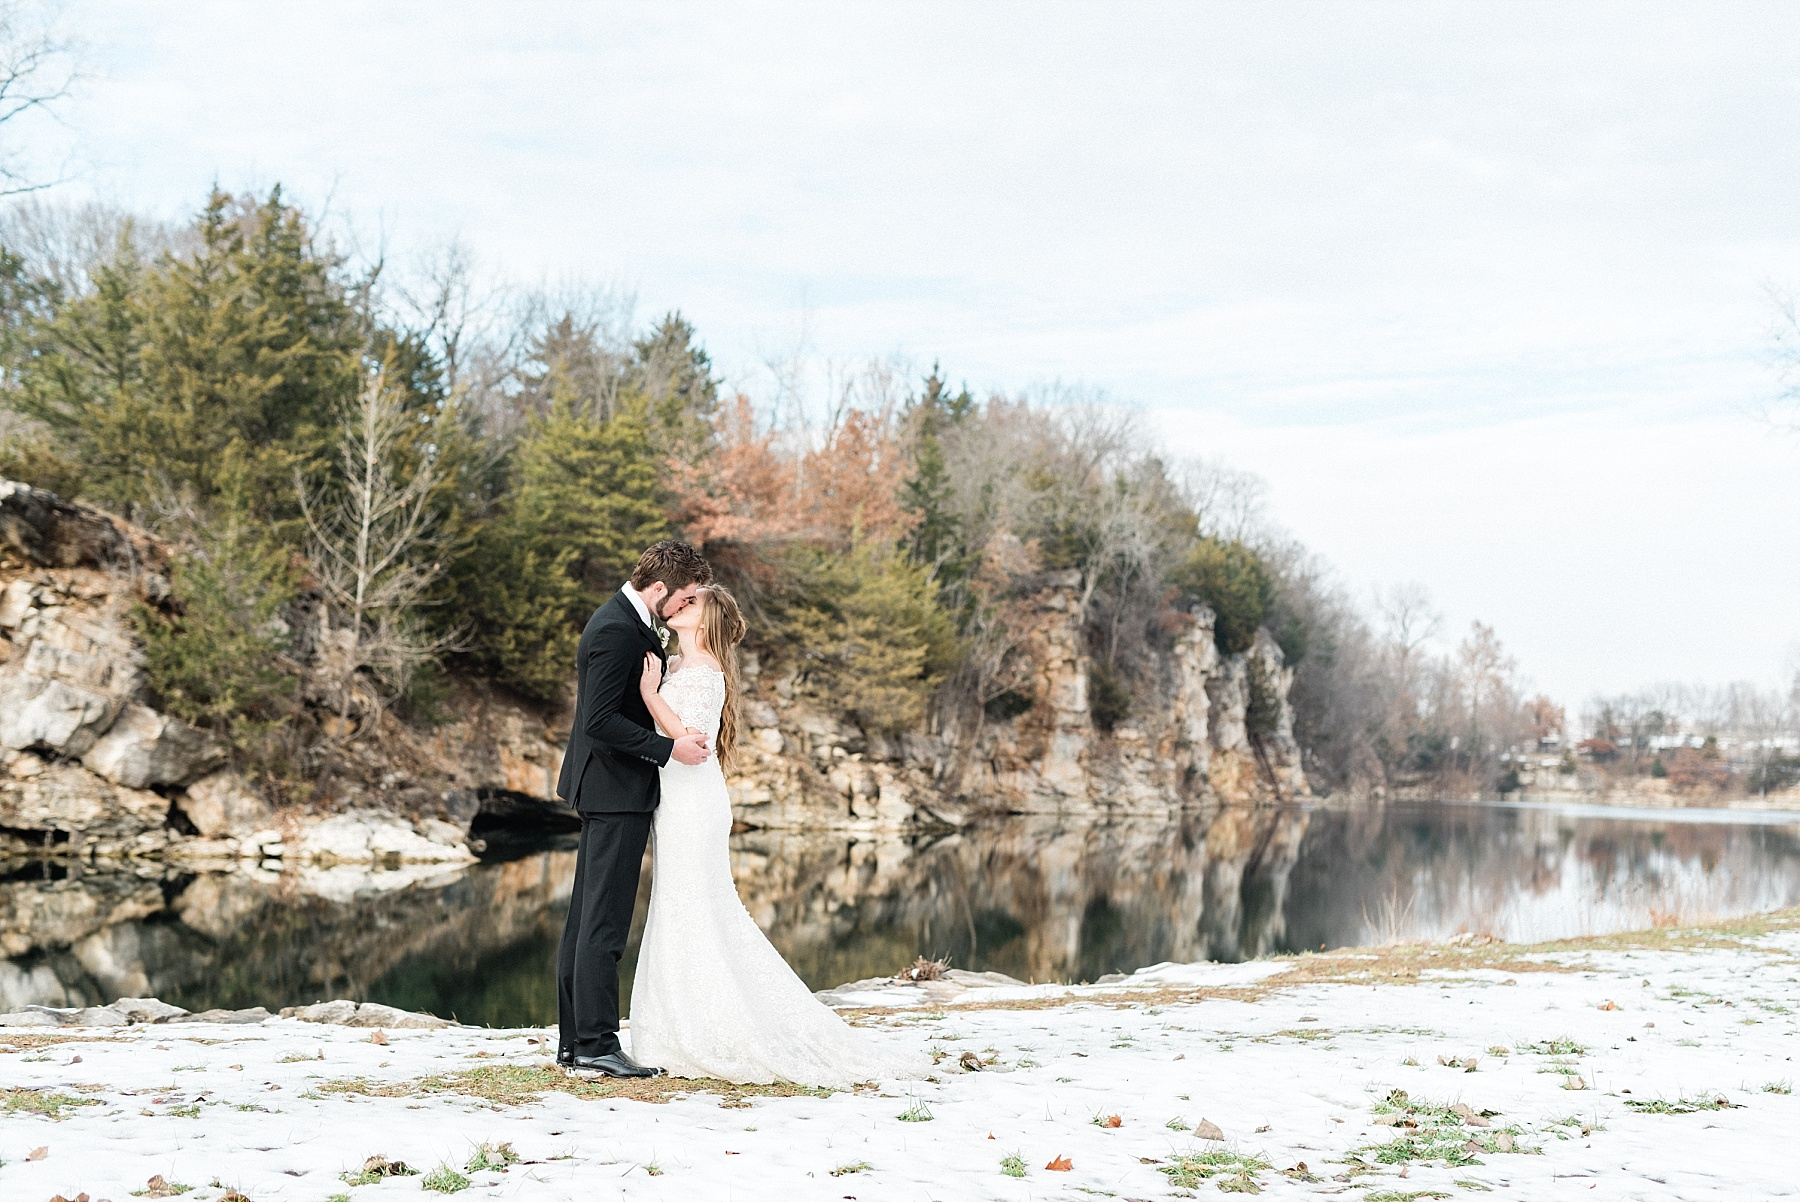 Snowy Winter Wedding at Wildcliff Events Lake With Earthy Jewel Tones and Organic Refined Style by Kelsi Kliethermes Photography Kansas City Missouri Wedding Photographer_0006.jpg